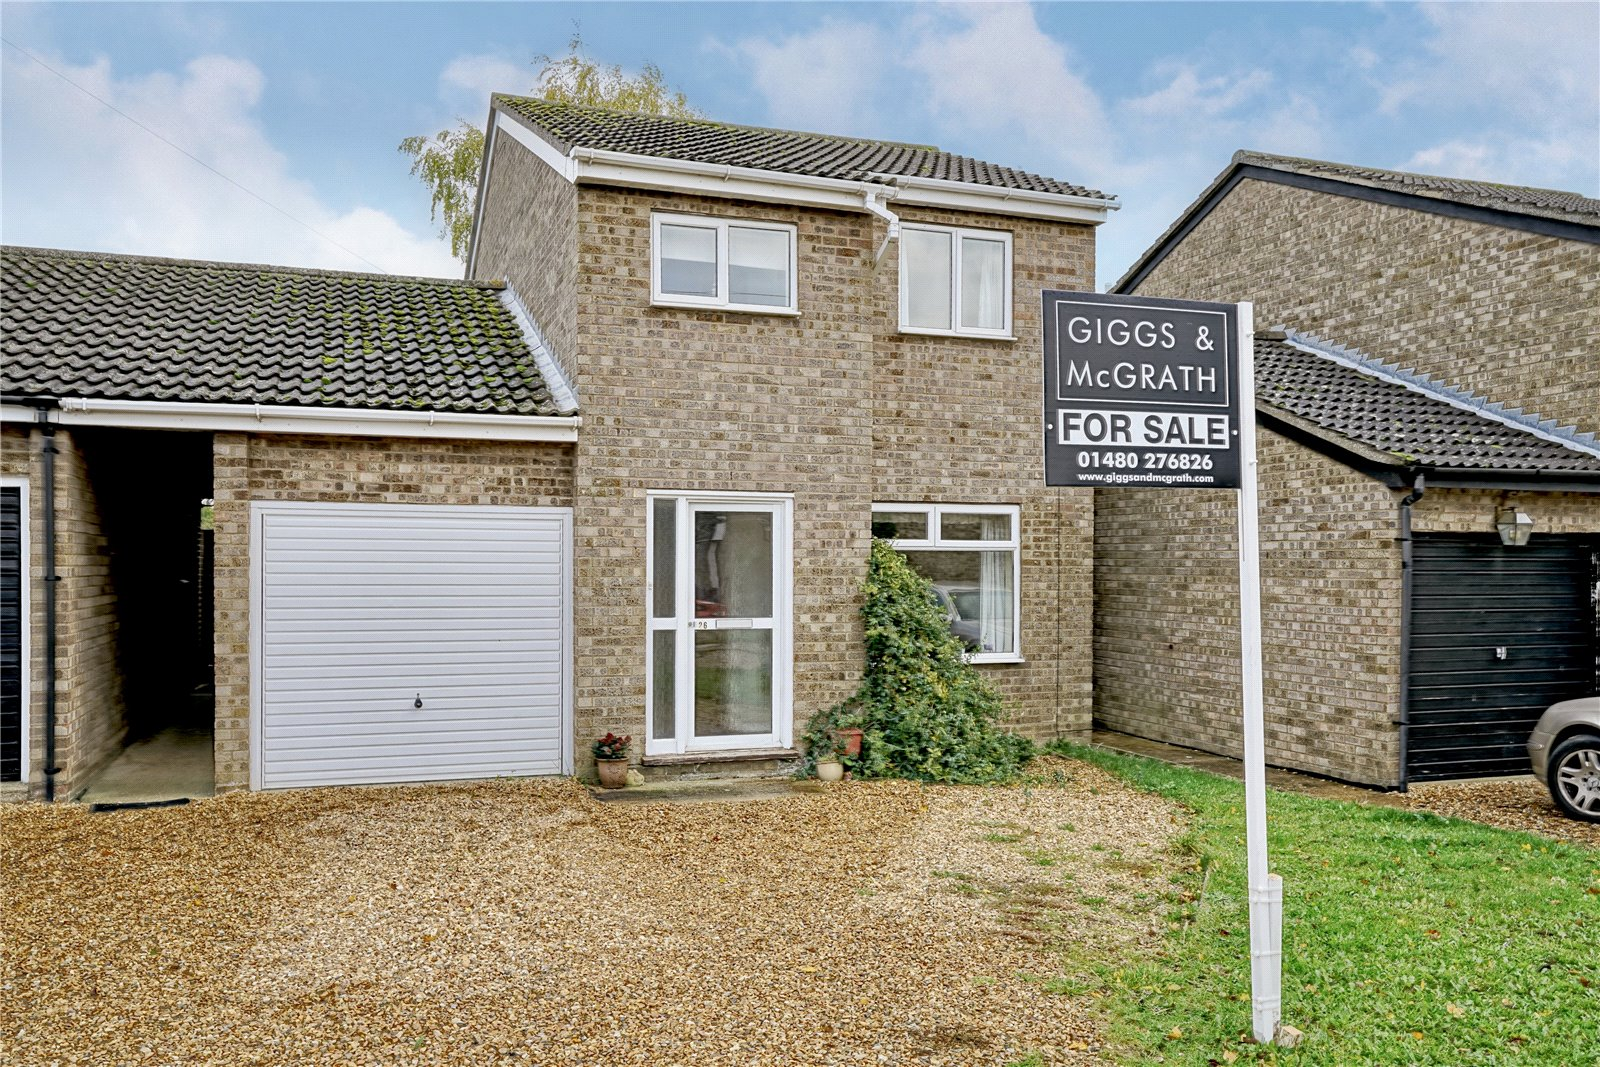 3 bed house for sale in Earith, PE28 3QU 0